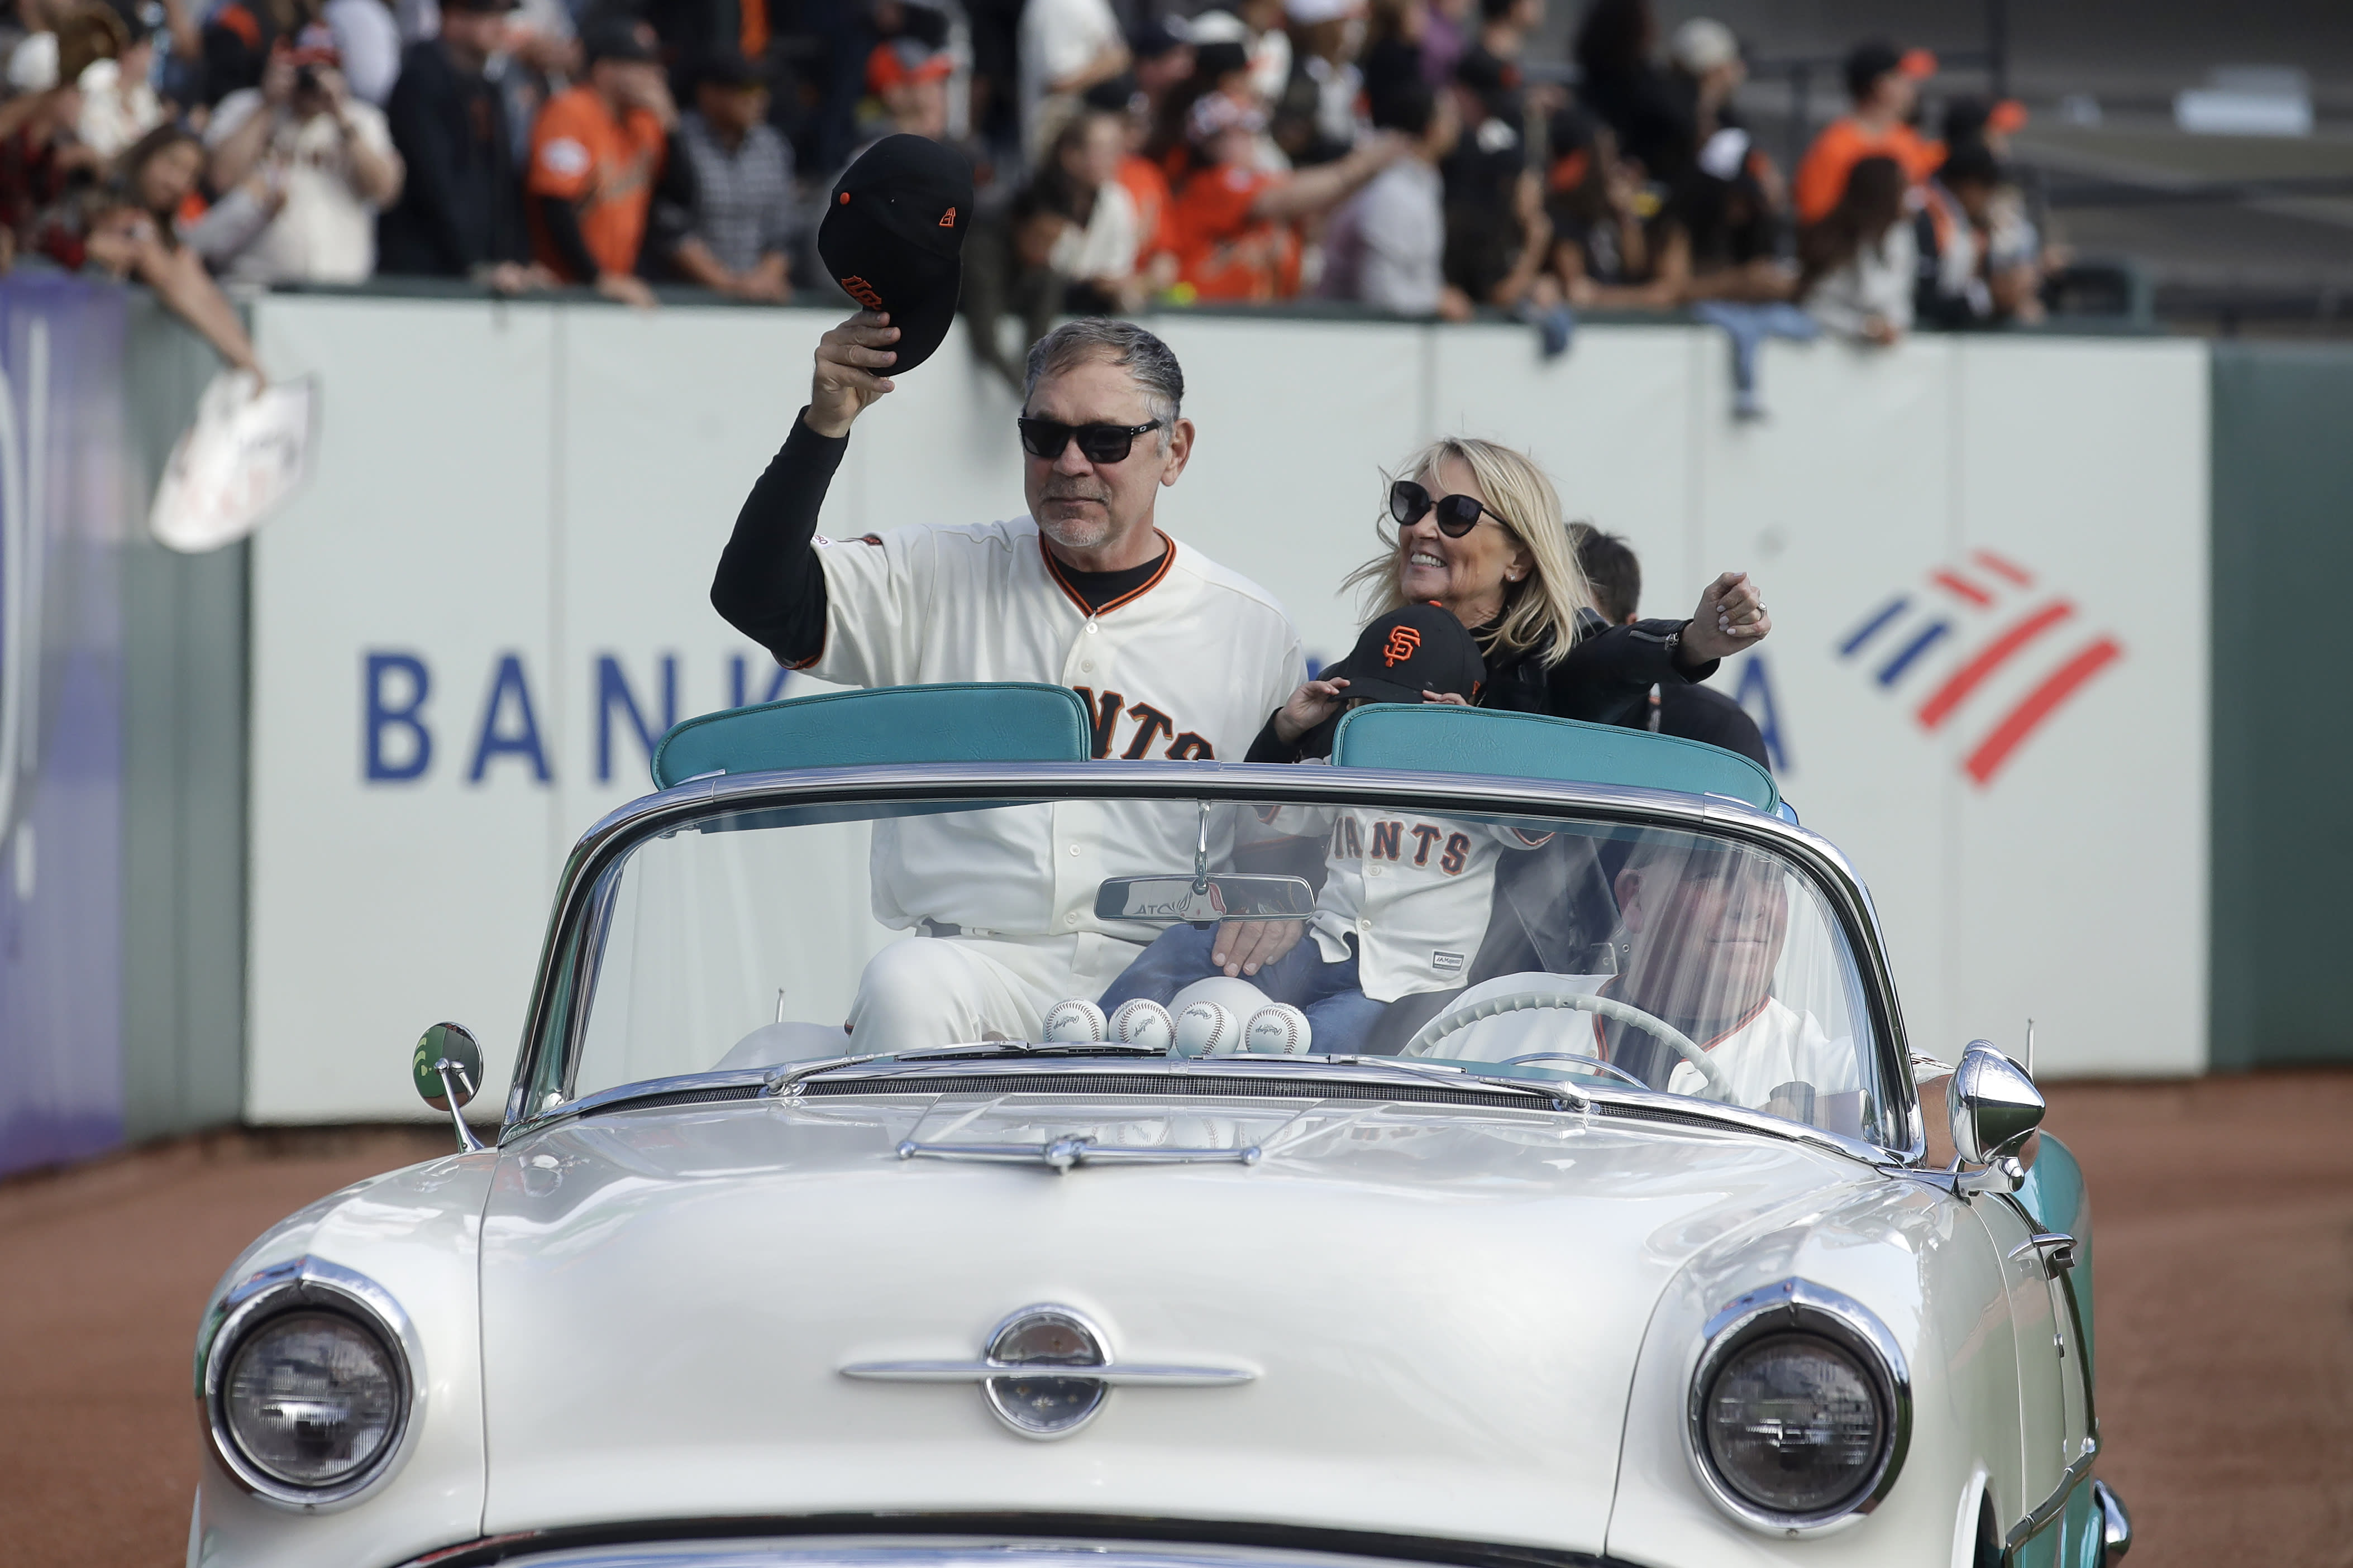 San Francisco Giants manager Bruce Bochy, left, is driven around the field with his wife Kim during a ceremony honoring Bochy after a baseball game between the Giants and the Los Angeles Dodgers in San Francisco, Sunday, Sept. 29, 2019. (AP Photo/Jeff Chiu, Pool)